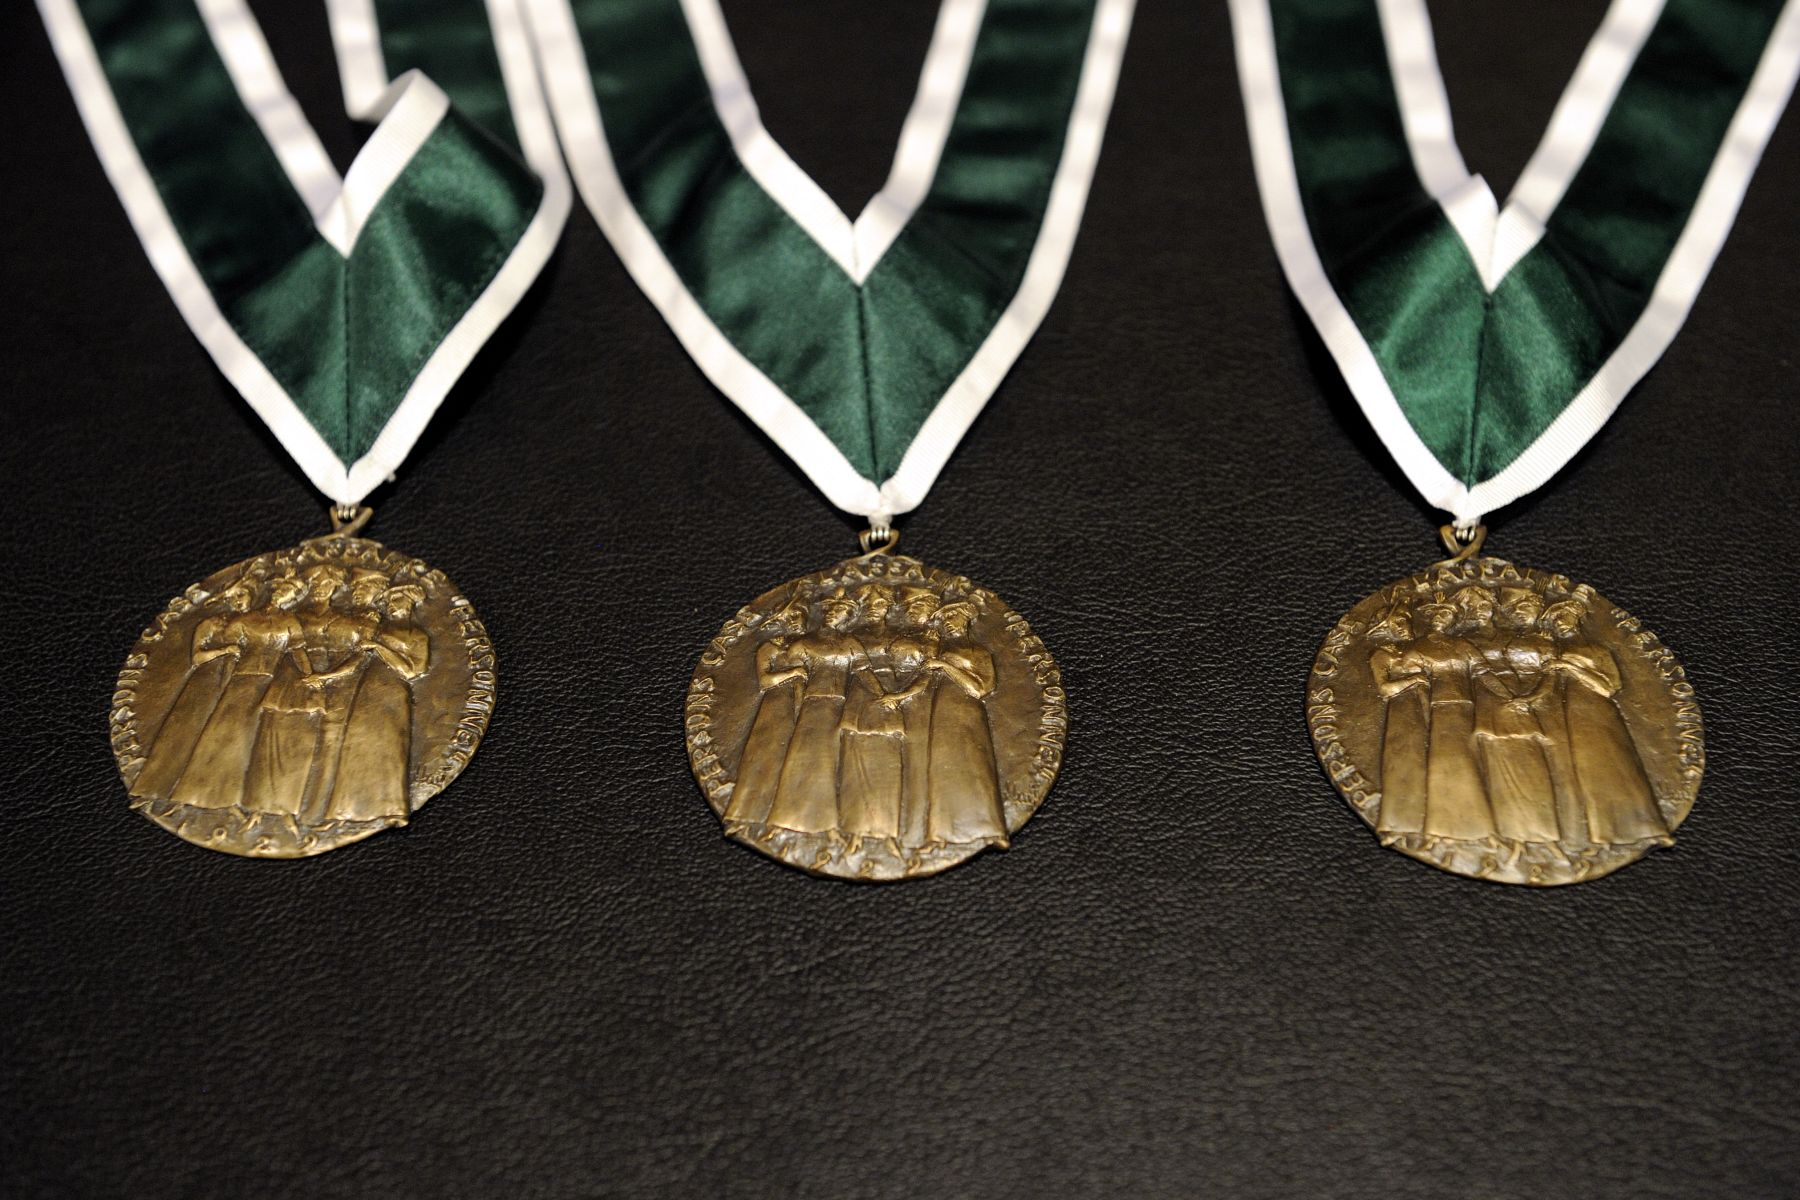 In 1929, five women from Alberta won the judiciary battle to be recognized as persons, therefore making them eligible for appointment to the Senate. The Governor General's Awards in Commemoration of the Persons Case were established in 1979, by the Government of Canada, with the support of then-Governor General the Right Honourable Edward Schreyer, to celebrate the 50th anniversary of this historic decision. These awards highlight Canadian contributions to the advancement of women's equality and celebrate Canada's evolution as an inclusive society.